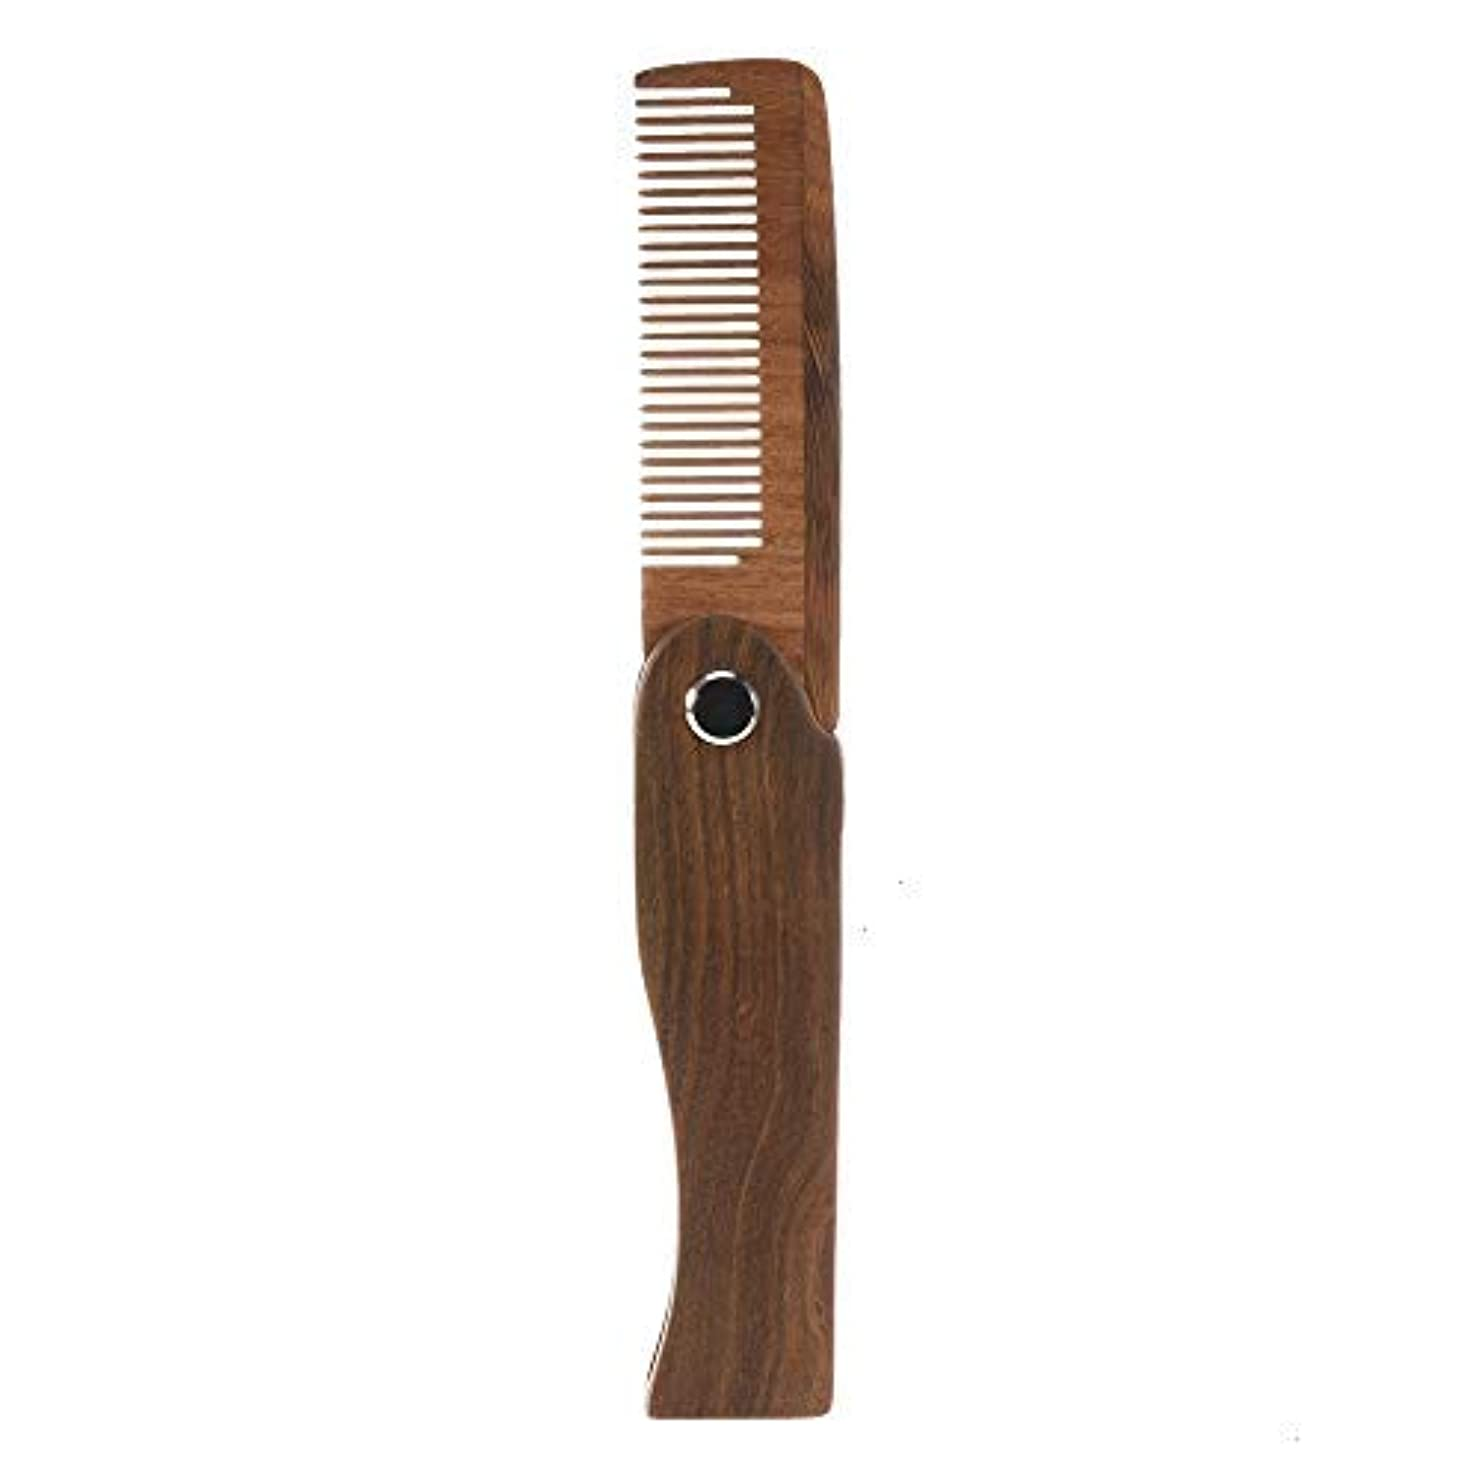 レベル乱用北へFeeko Folding Wooden Comb, 1 PC Pocket Size Hair Beard Fold Wooden Comb Durable Anti-Static Sandalwood Comb Every Day Grooming [並行輸入品]